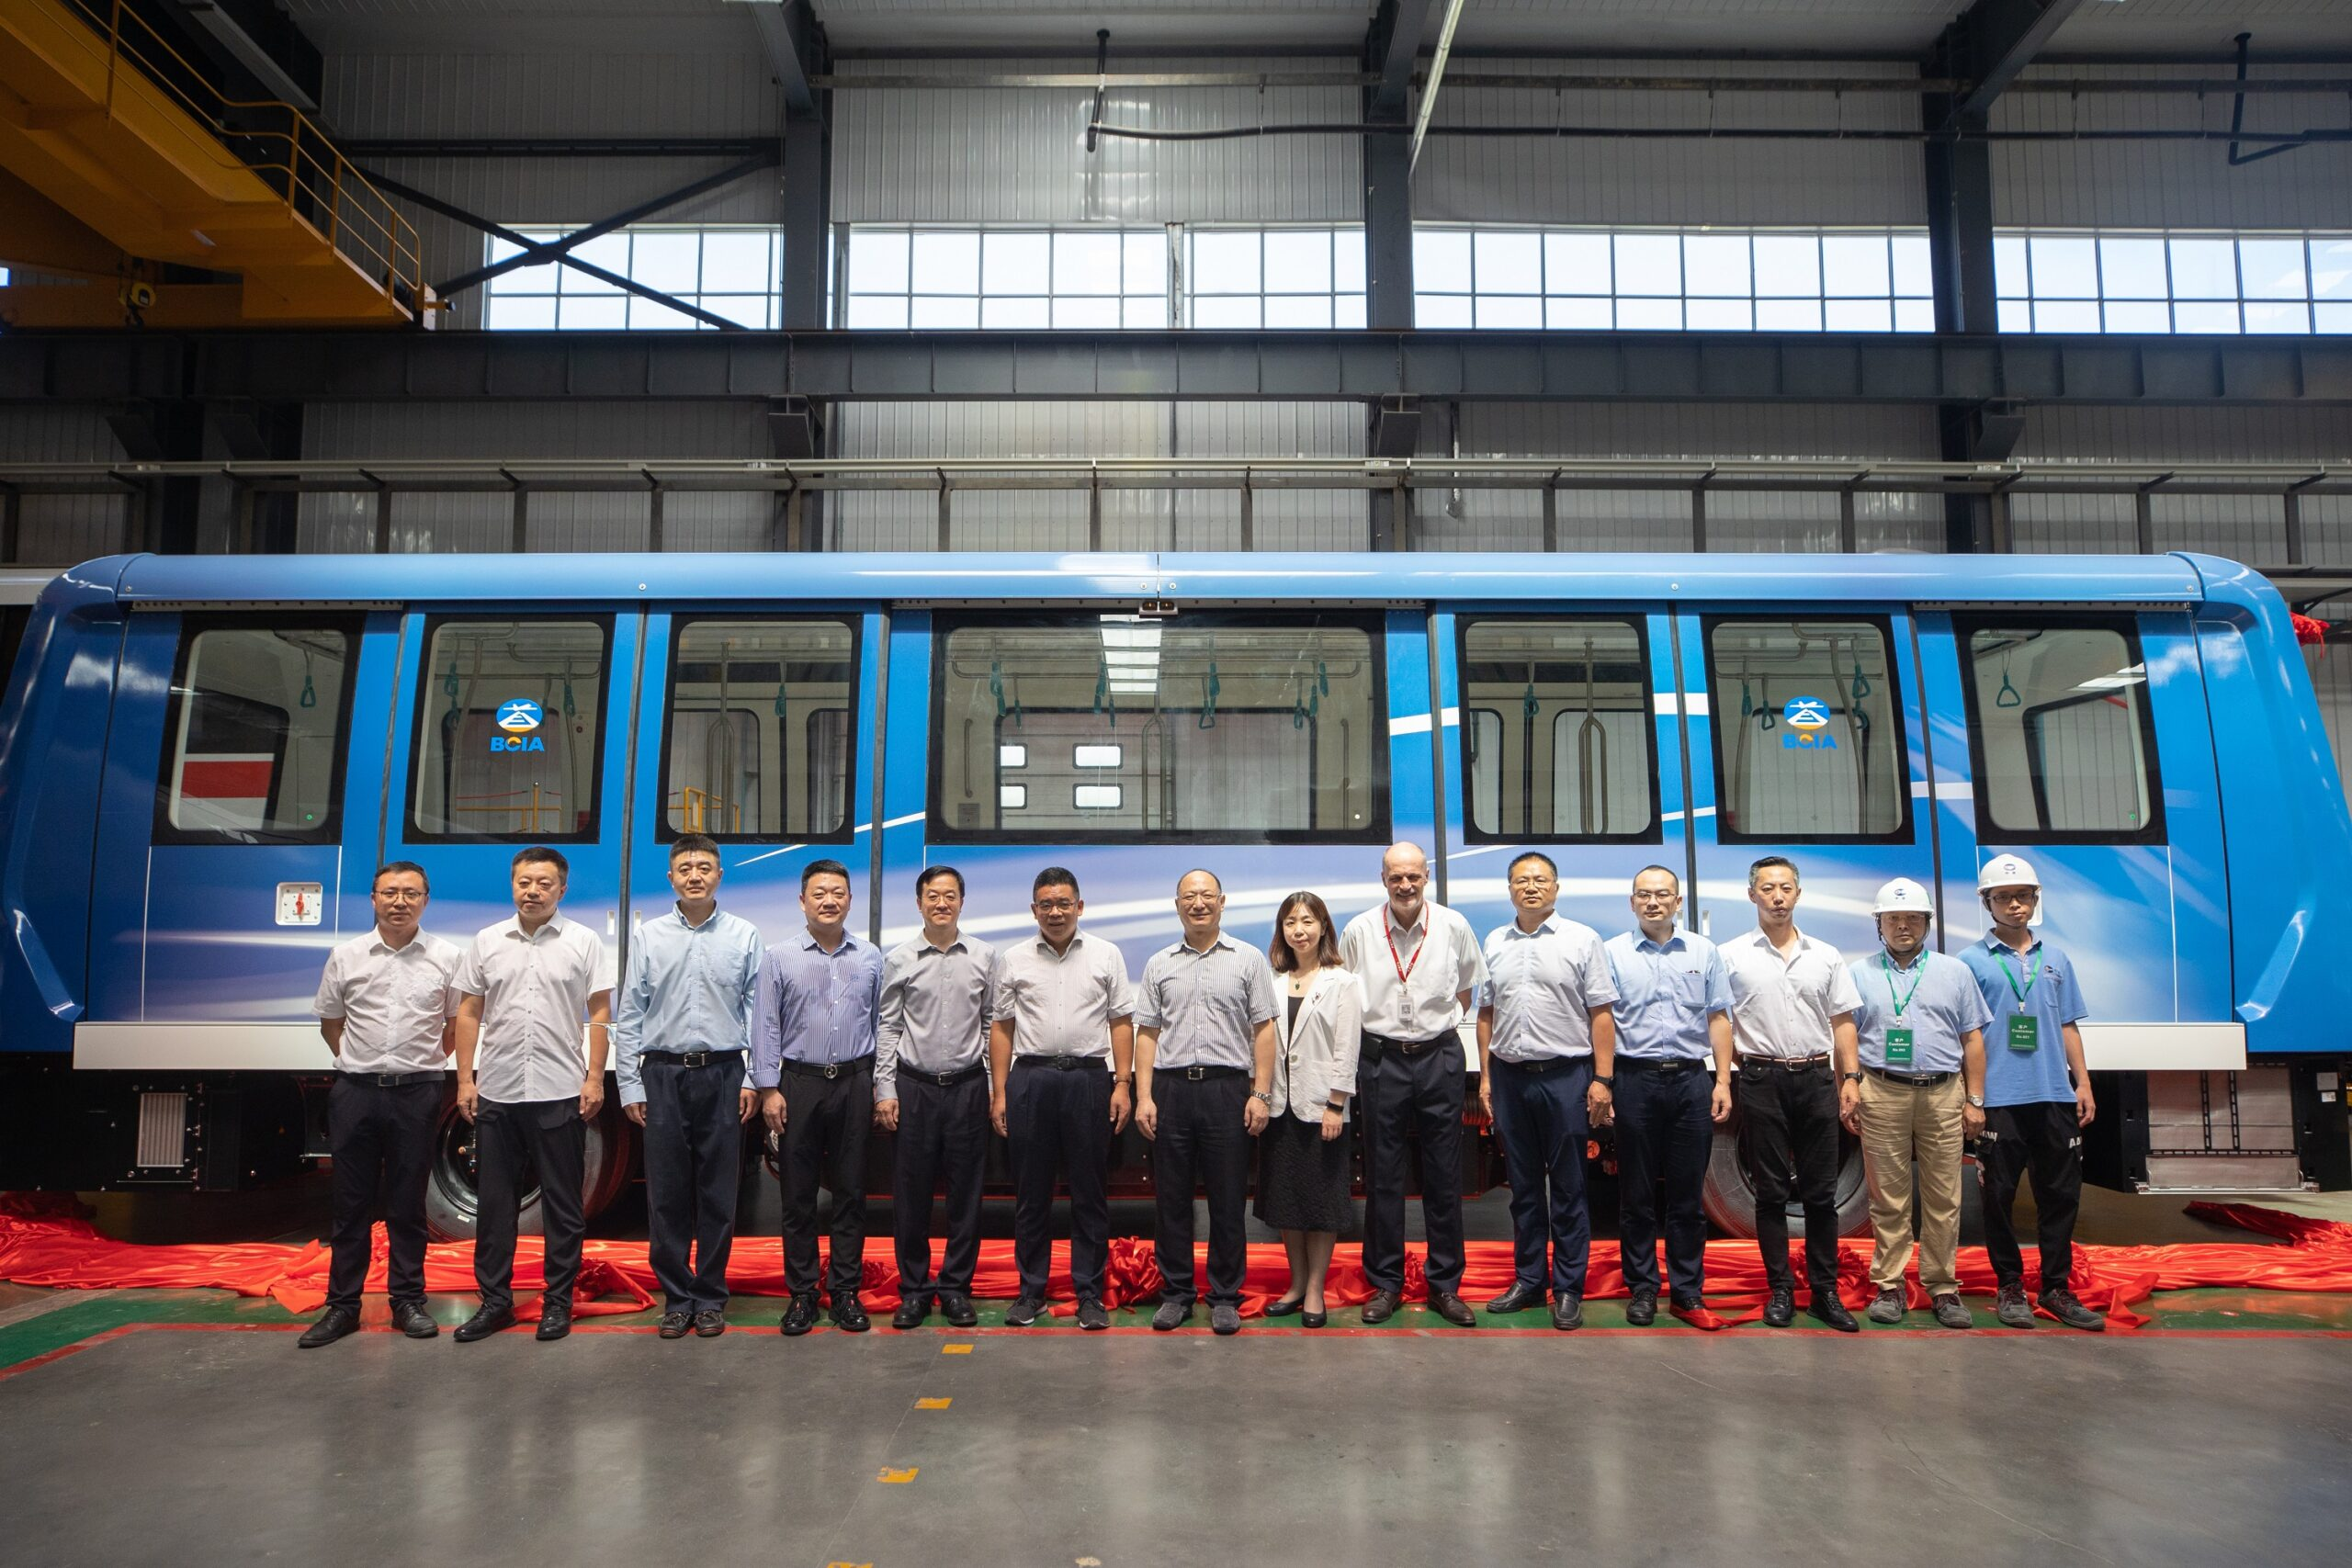 Group photo in front of the new automated people mover for Beijing Capital International Airport